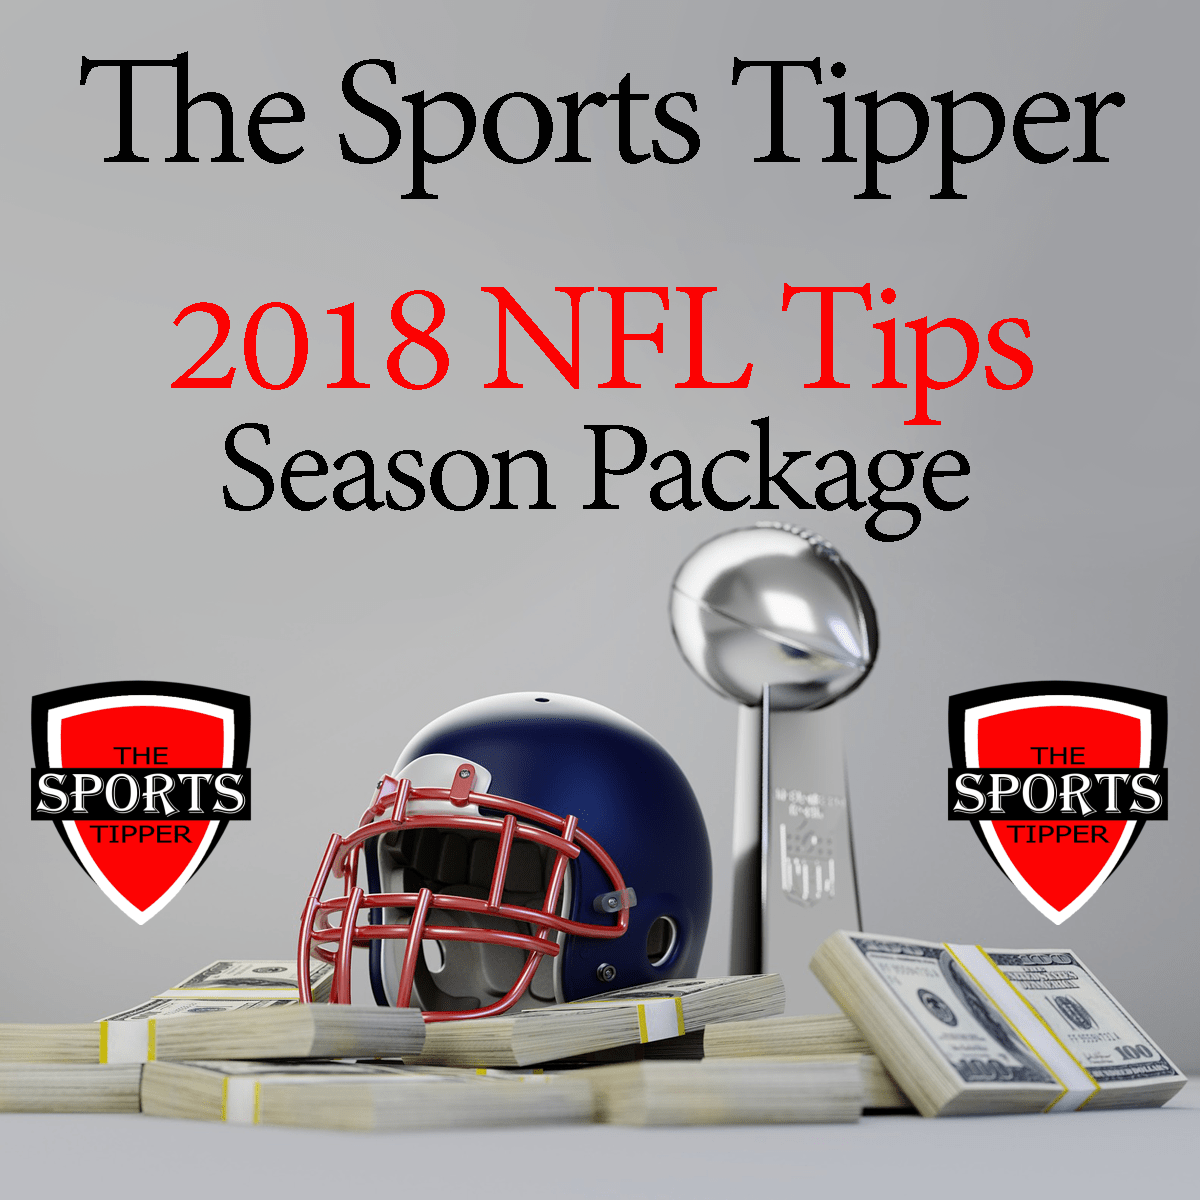 2018 NFL Tips SEASON PACKAGE